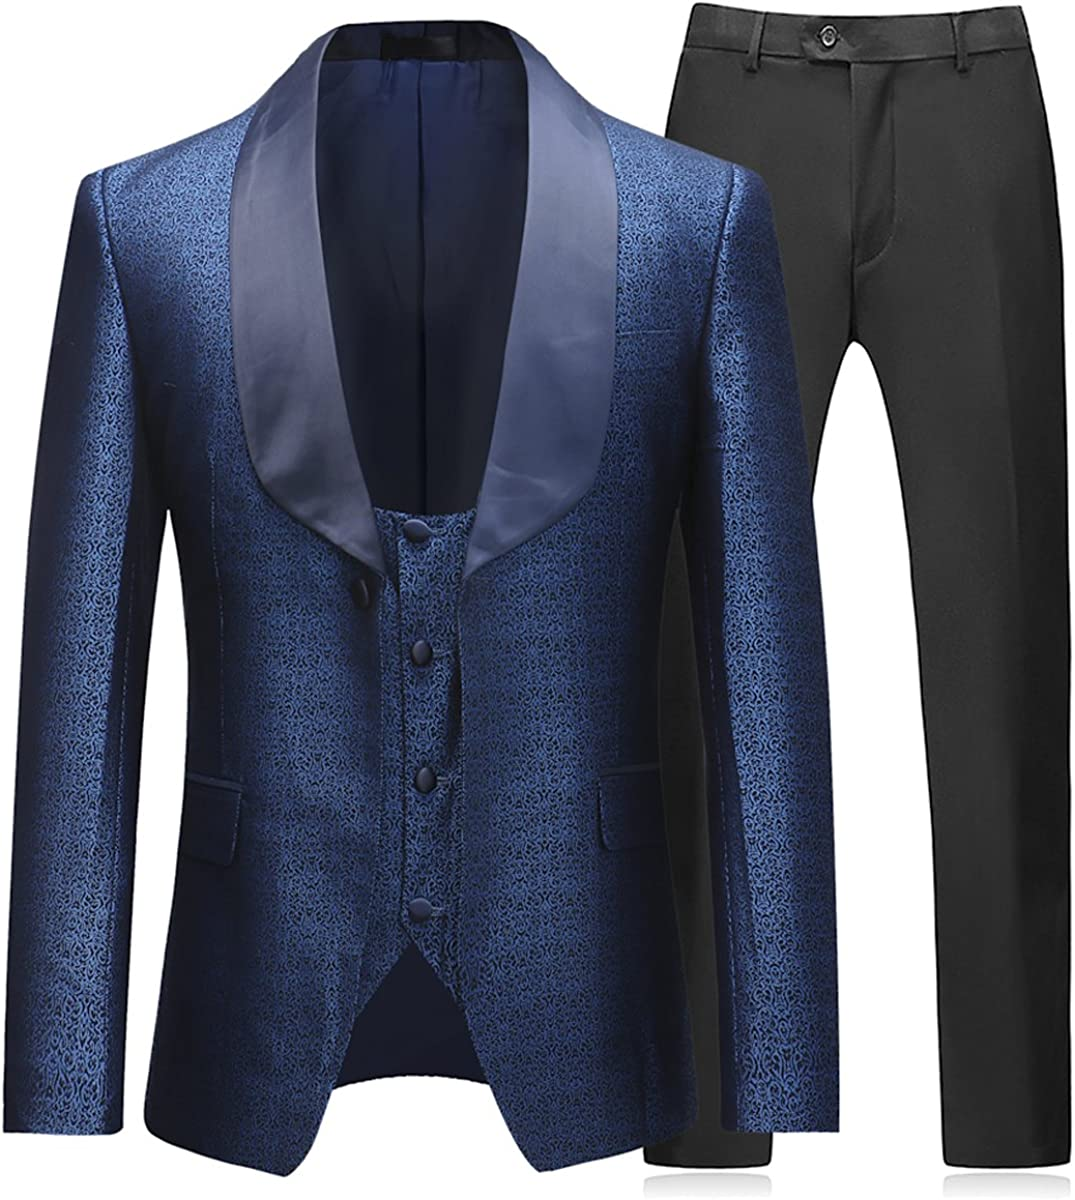 Boyland Mens 3 Piece Tuxedo Prom Groom Max 58% OFF Party Free shipping New Suits Dinner